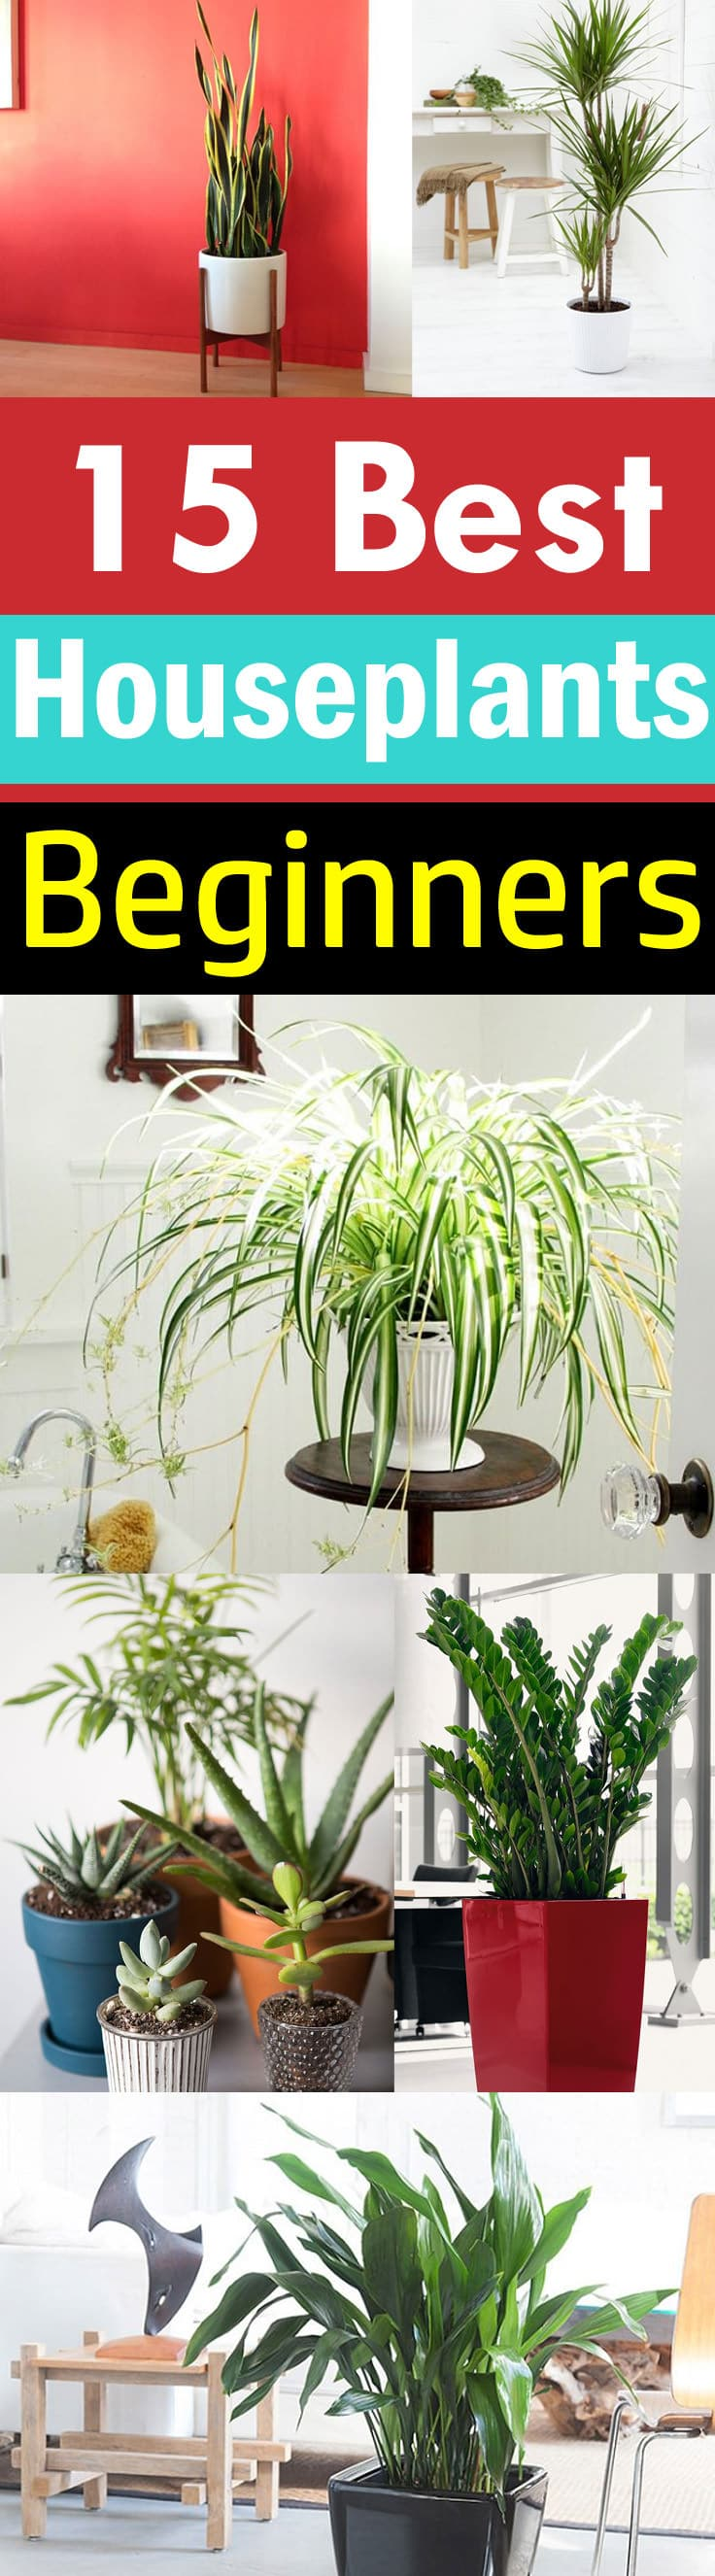 New to growing plants and no idea what you should grow indoors? Learn about these 15 Best Houseplants for Beginners. They all are easy to grow!